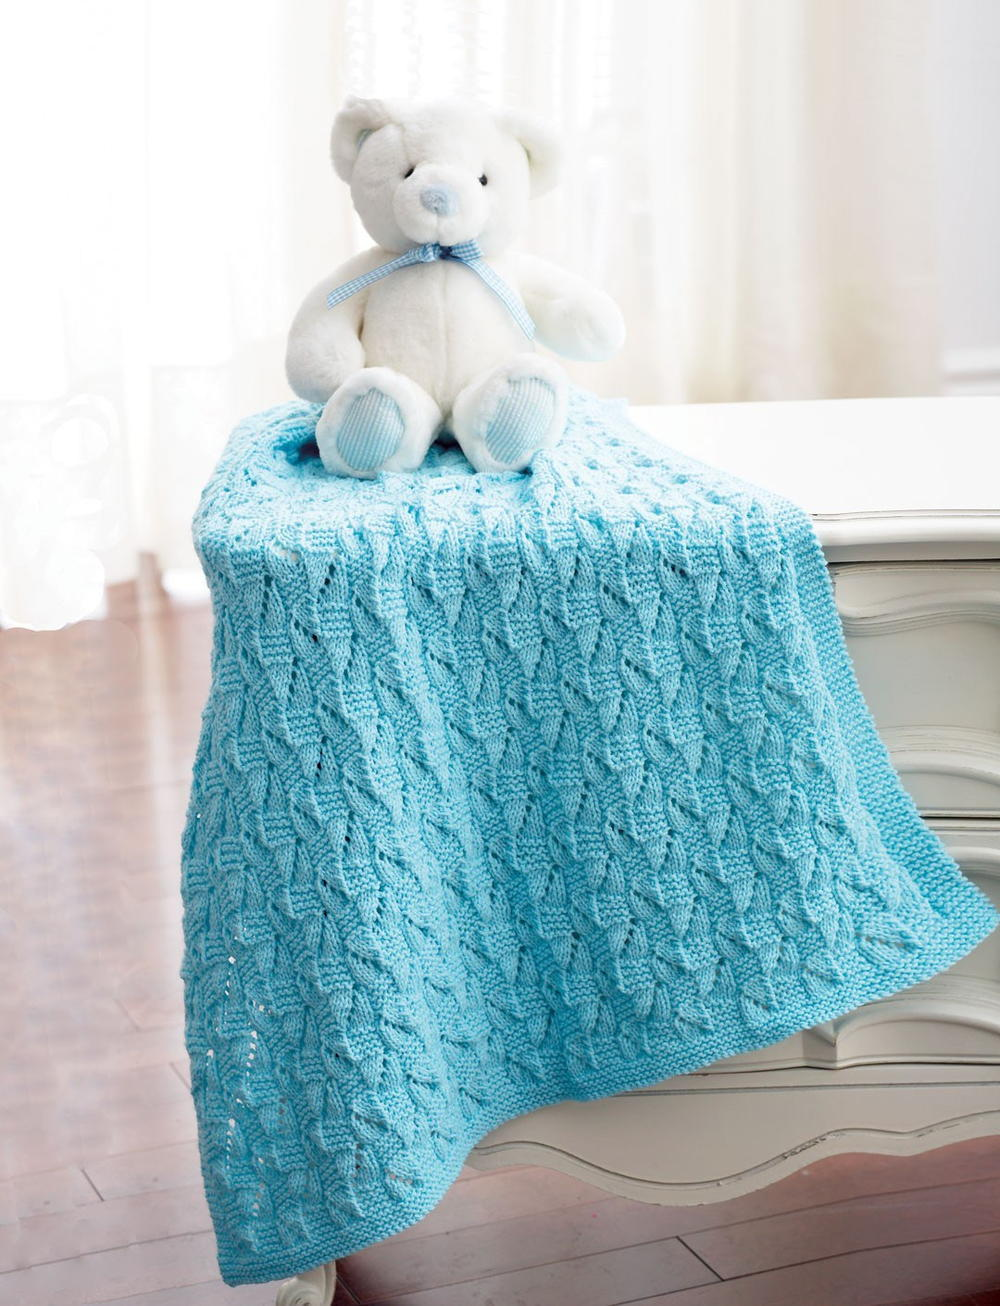 19 Free Baby Blanket Knitting Patterns | FaveCrafts.com